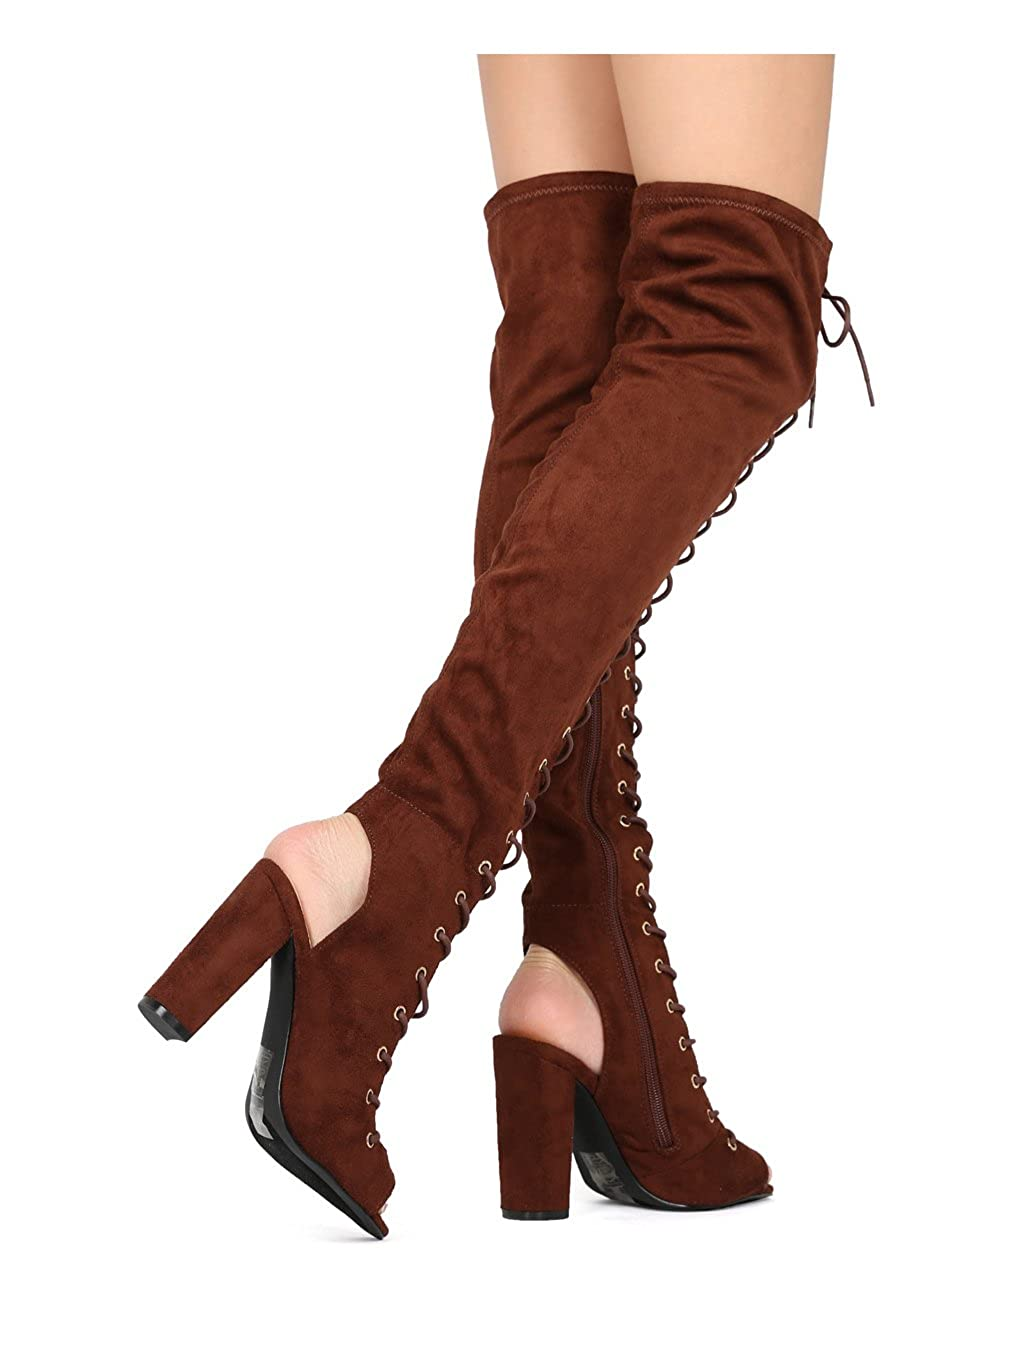 aa3f291176 Amazon.com | Alrisco Women Faux Suede Over The Knee Peep Toe Lace Up Block  Heel Boot HG10 - Brown (Size: 8.5) | Over-the-Knee